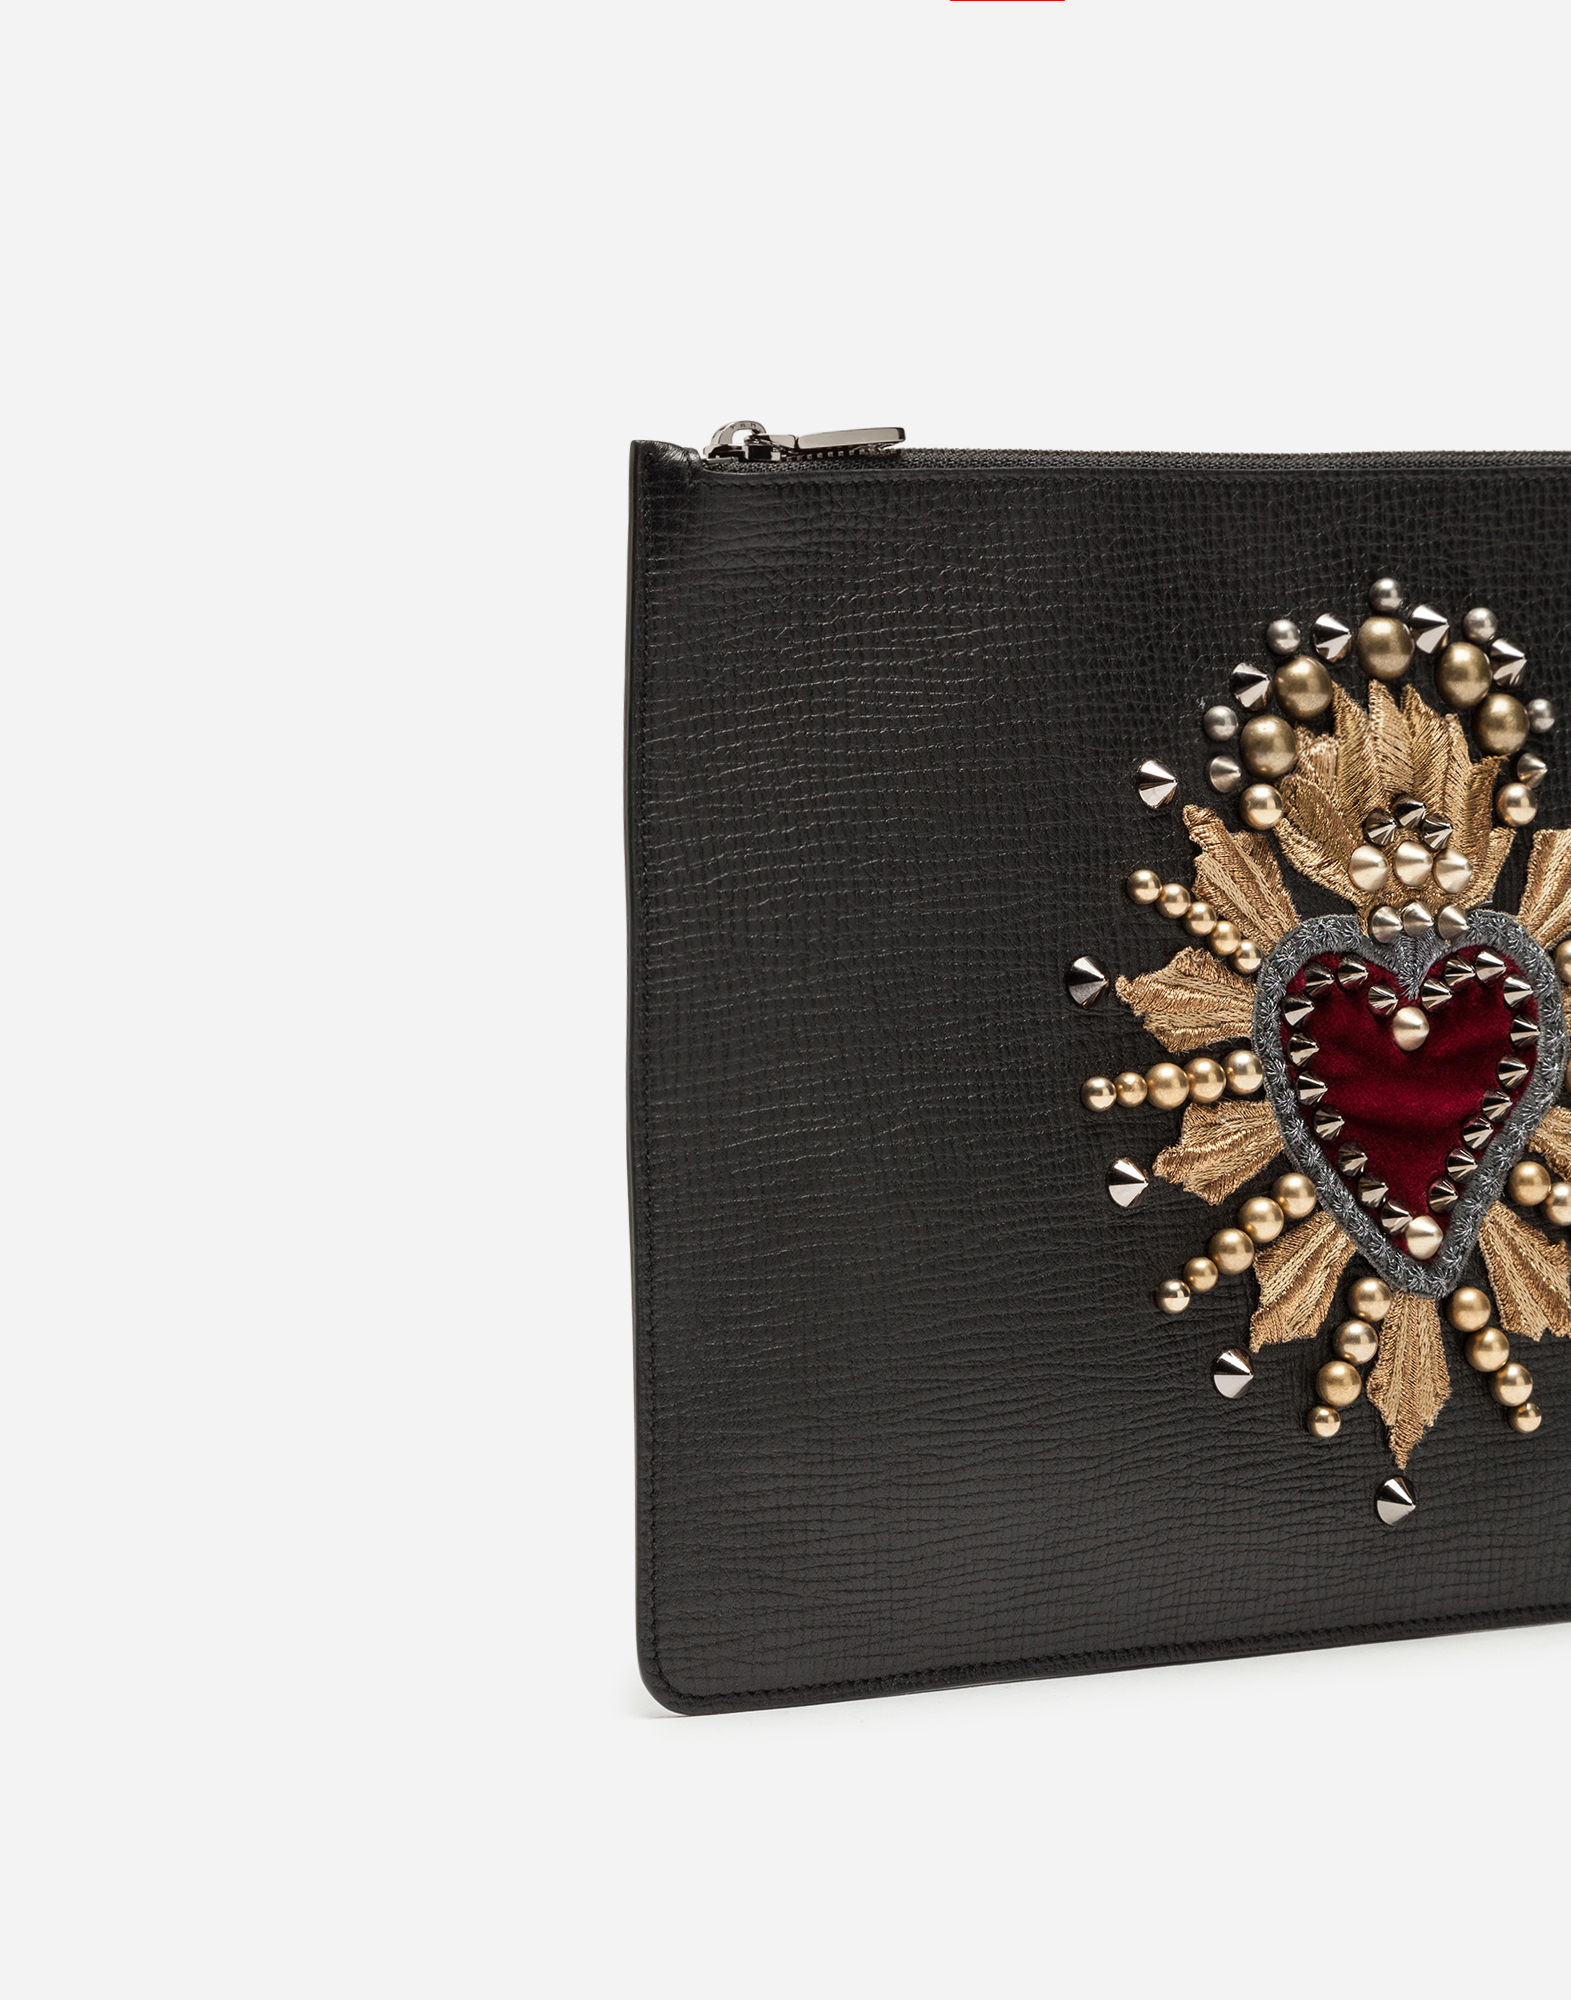 Dolce&Gabbana CALFSKIN DOCUMENT HOLDER WITH HEART PATCH